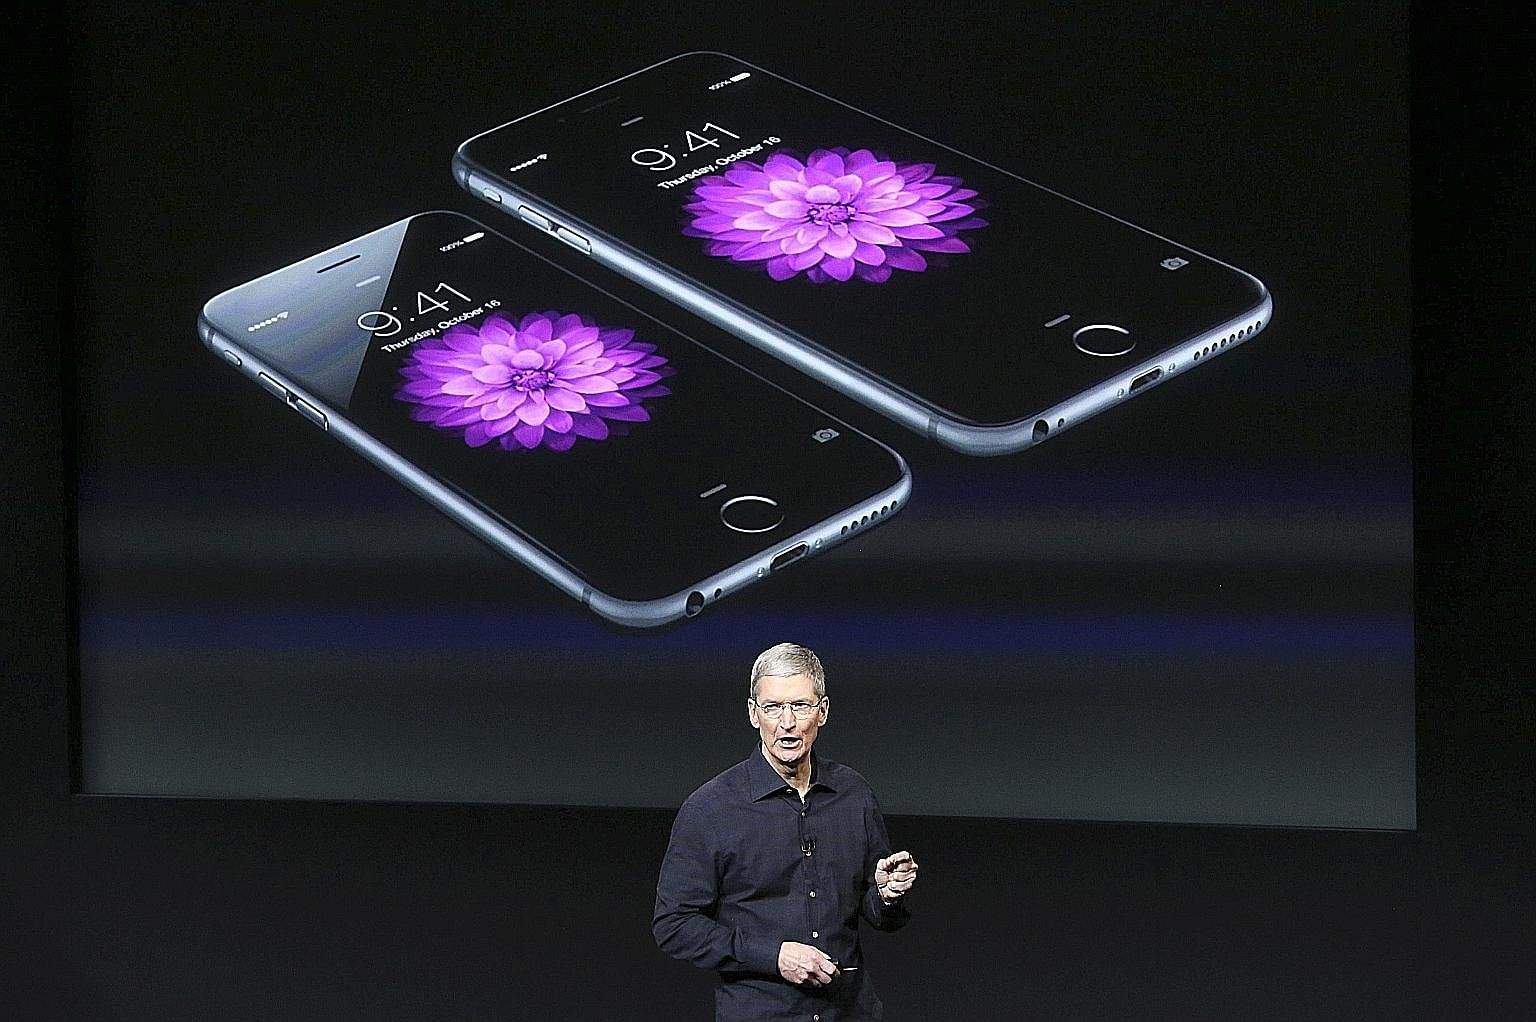 Apple CEO Tim Cook with a screen displaying the iPhone 6 during a presentation at Apple headquarters in Cupertino, California, in an Oct 16, 2014 file photo. Previously, under Mr Steve Jobs, Apple had a track record of cannibalising its own products.